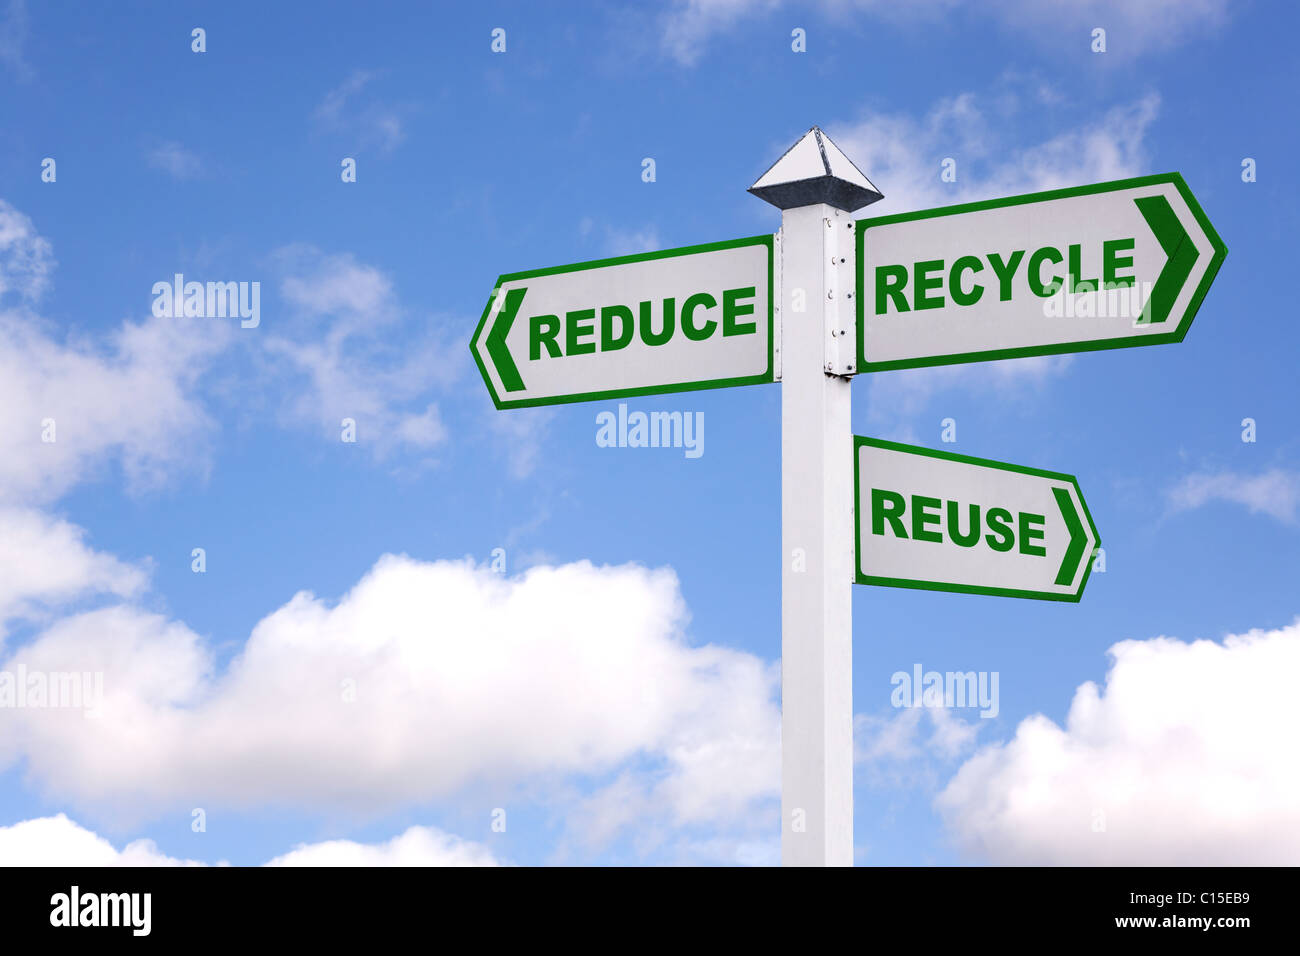 Recycling concept image of a signpost with the 3 Rs in green text on the directional arrows, Reduce, recycle, reuse. - Stock Image